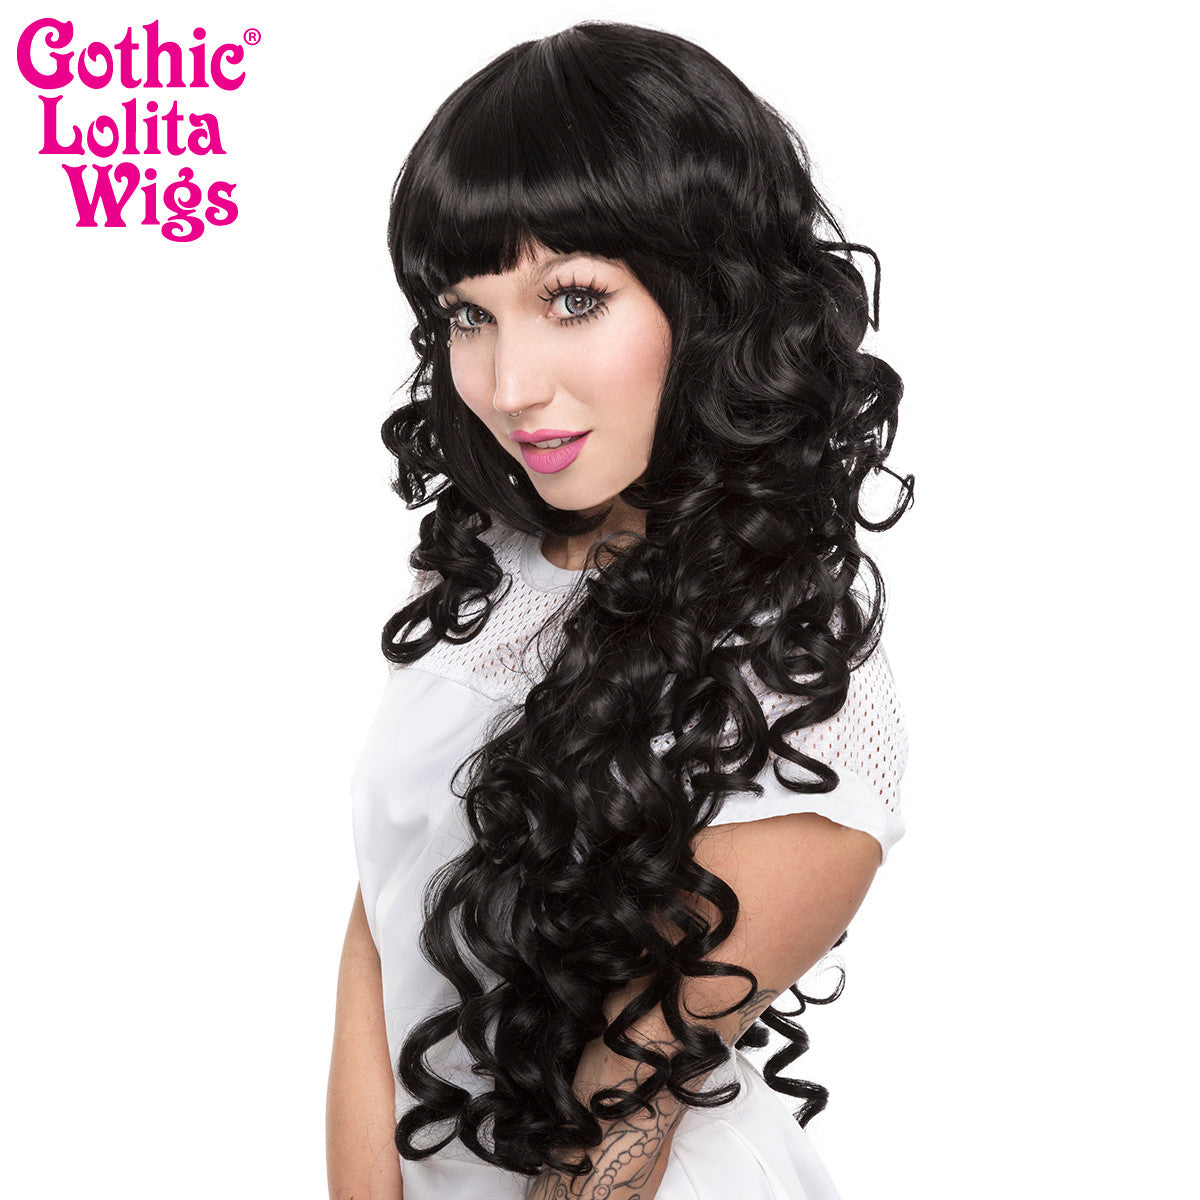 Gothic Lolita Wigs® <br> Duchess Elodie™ Collection - Black Mix -00050